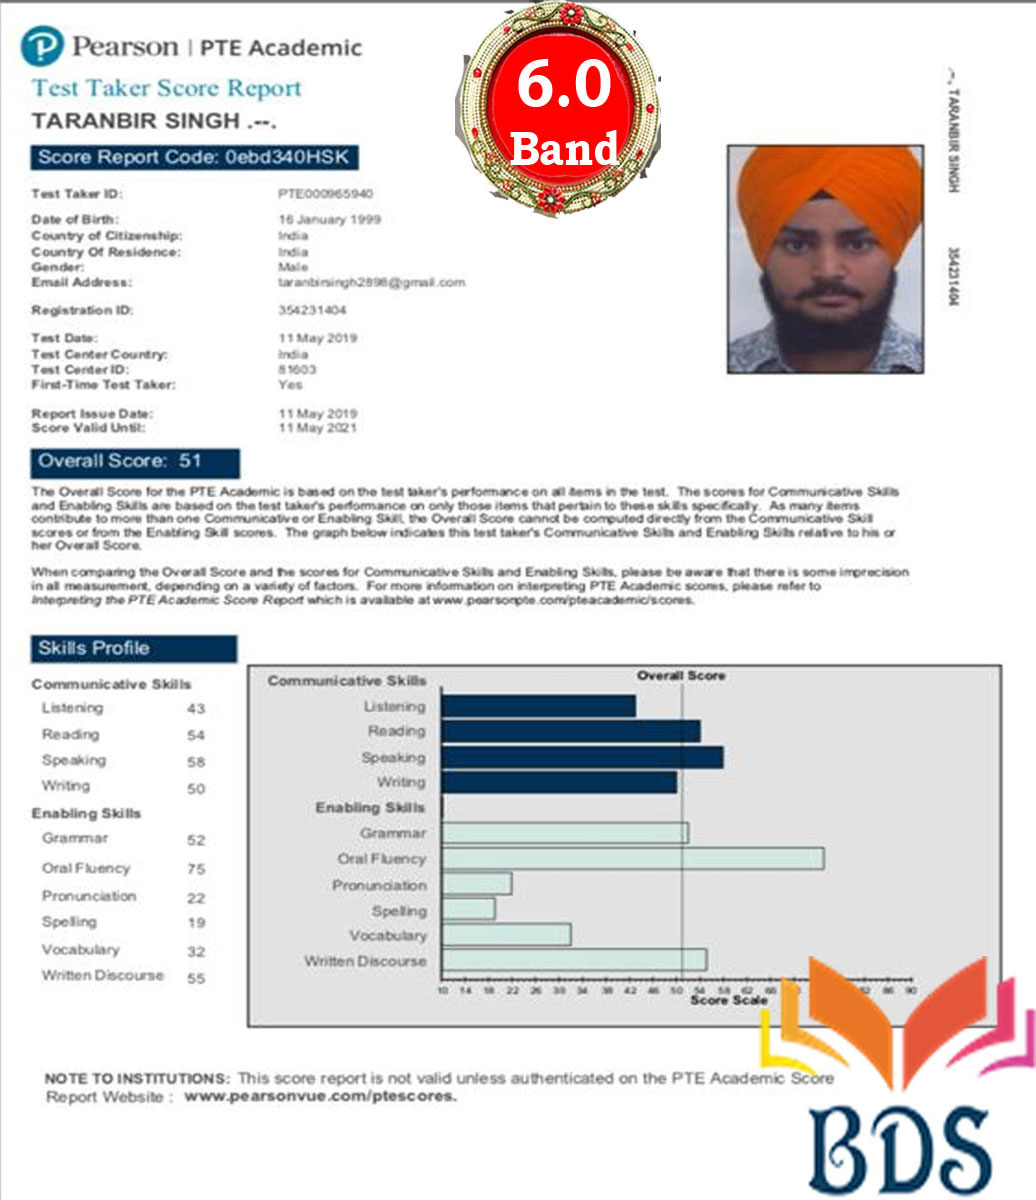 Best IELTS/ PTE/ TOEFL/ OET Coaching Centre In Amritsar (Guaranteed